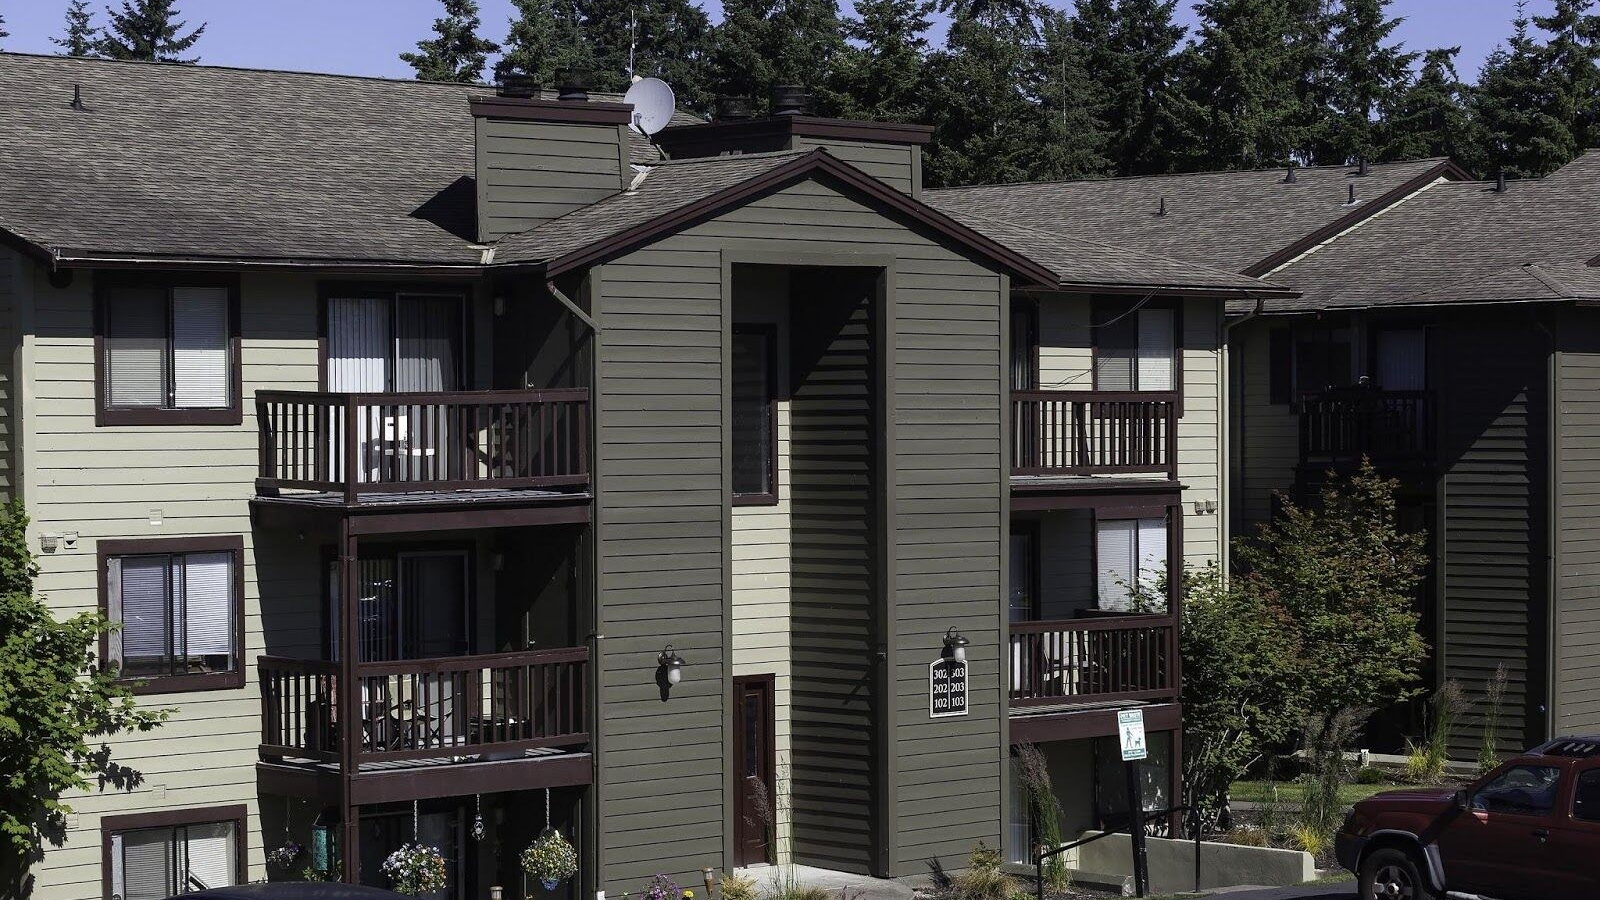 CrownPointeApartments1.jpeg